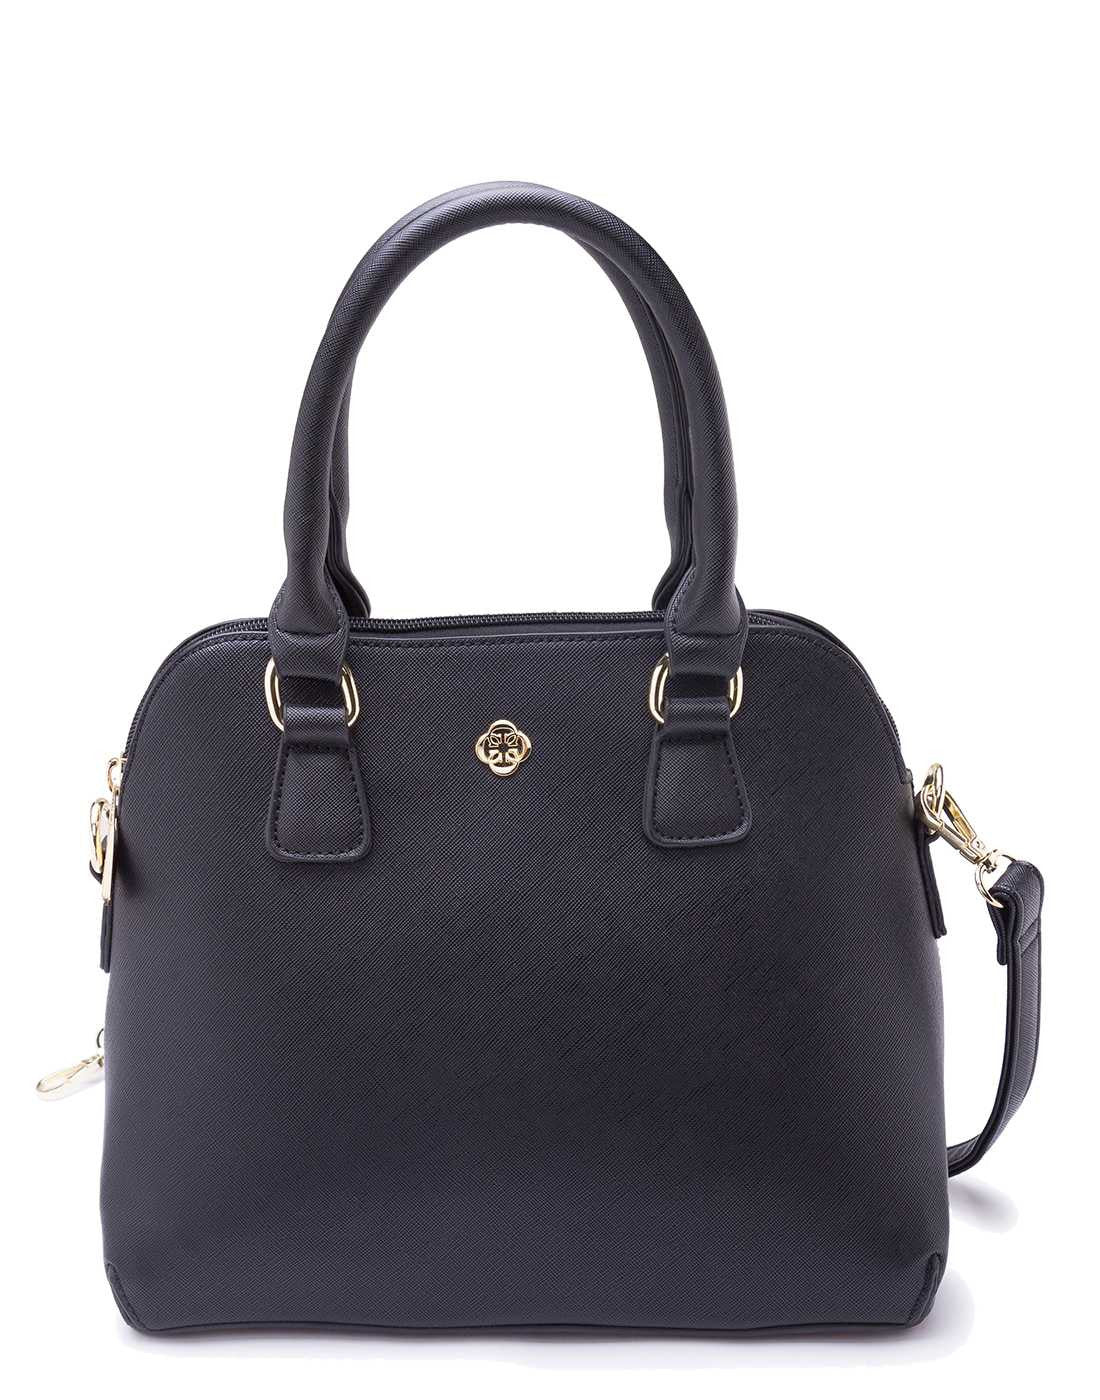 Black Structured Handbag